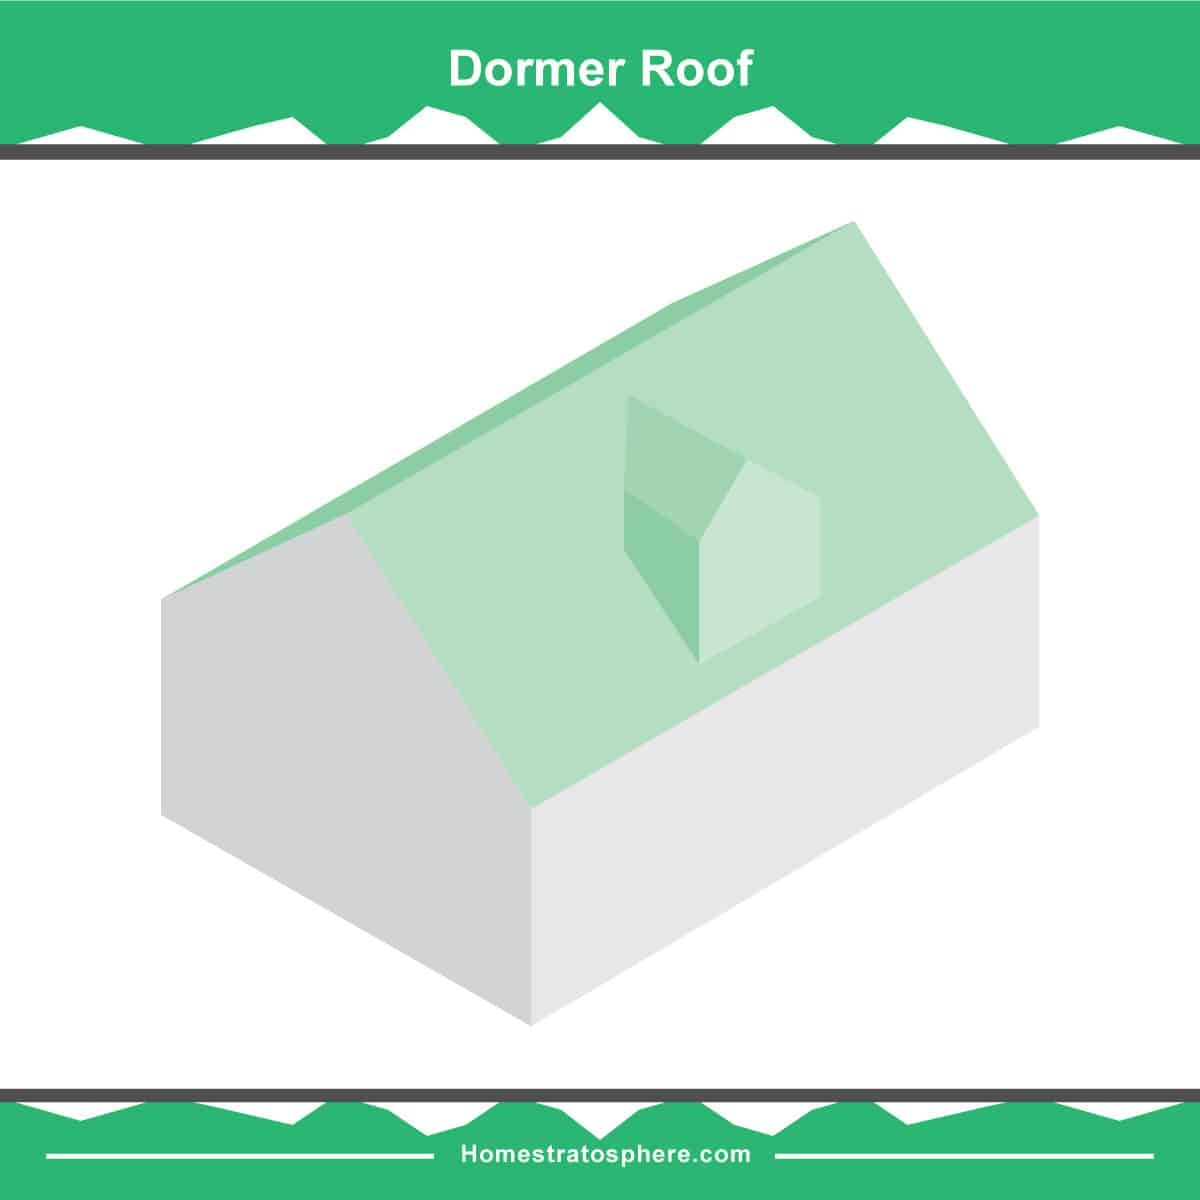 Dormer roof diagram